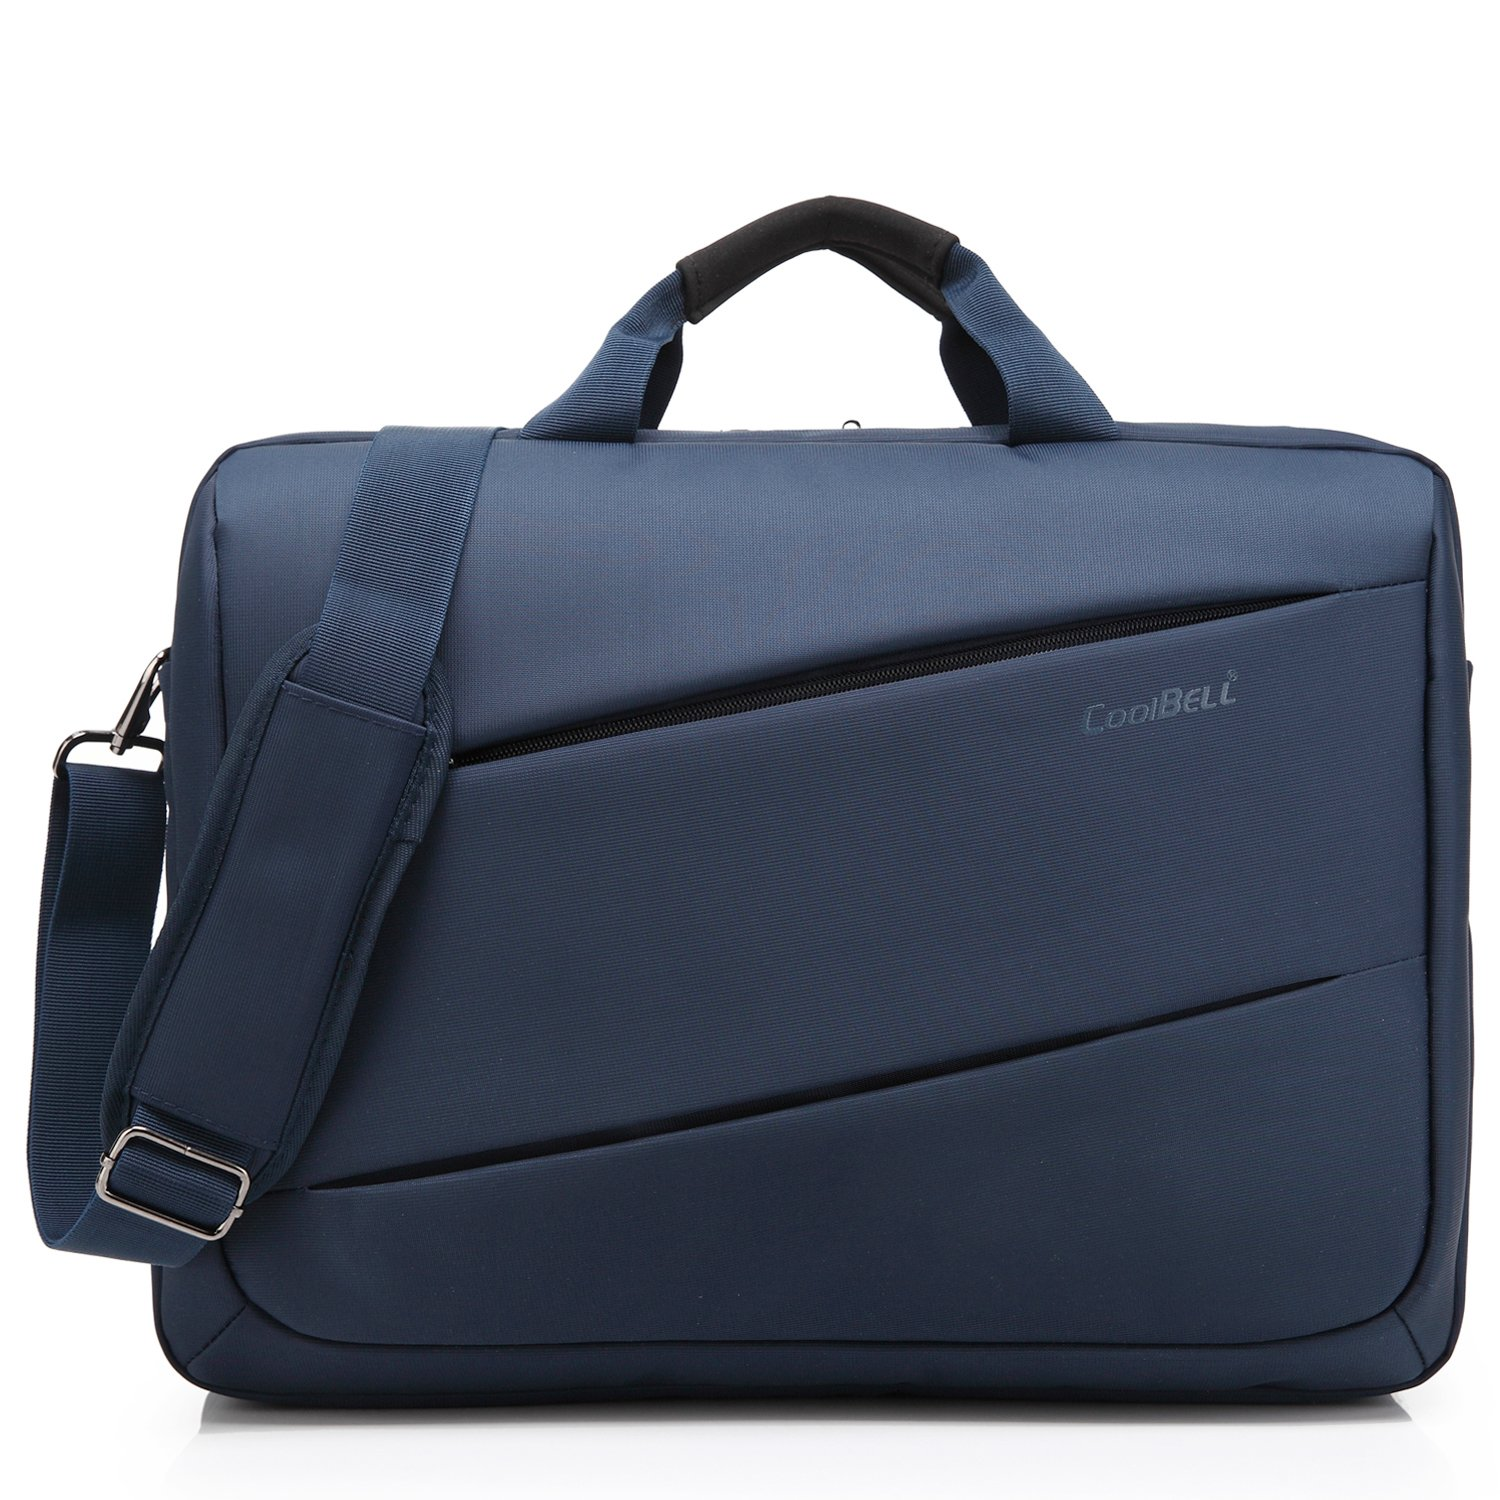 Amazon.com: CoolBell bolsa para laptop de 17.3 pulgadas ...